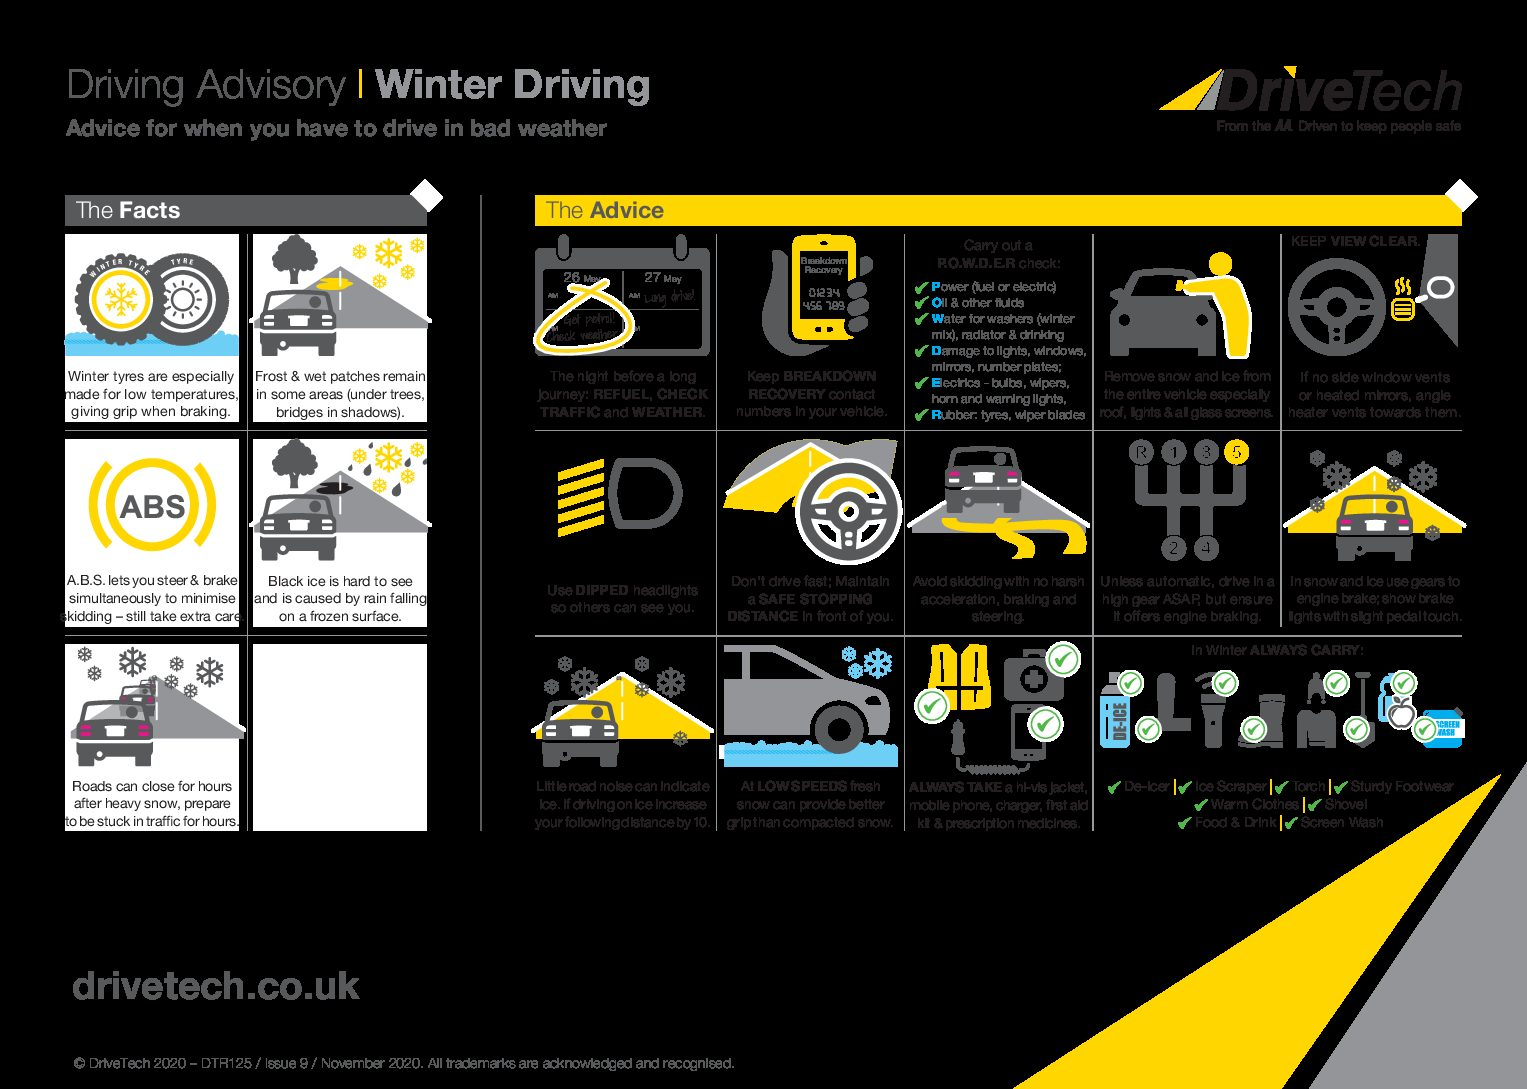 Driving Advisory | Winter Driving